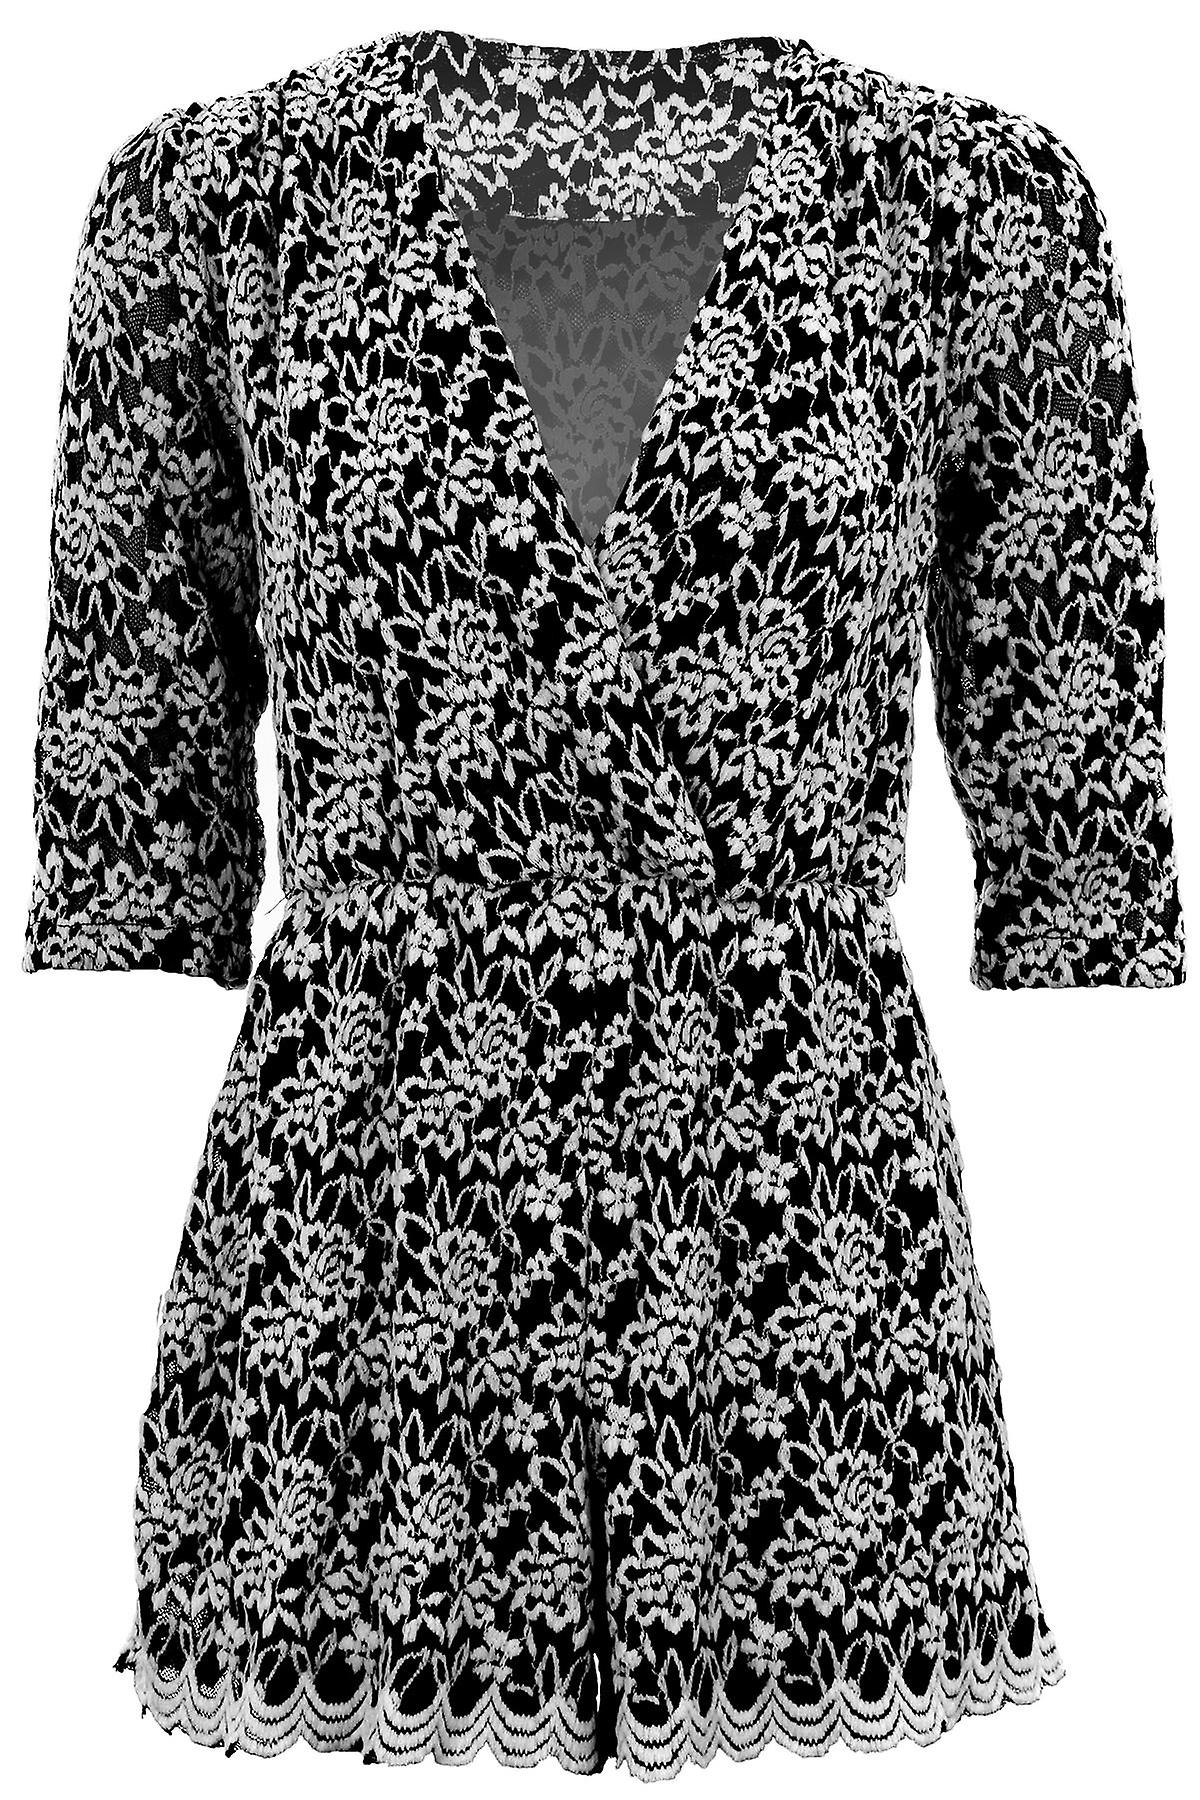 Ladies 3/4 Sleeve V Neck Wrap Floral Embroidered Lace Lined Women's Playsuit